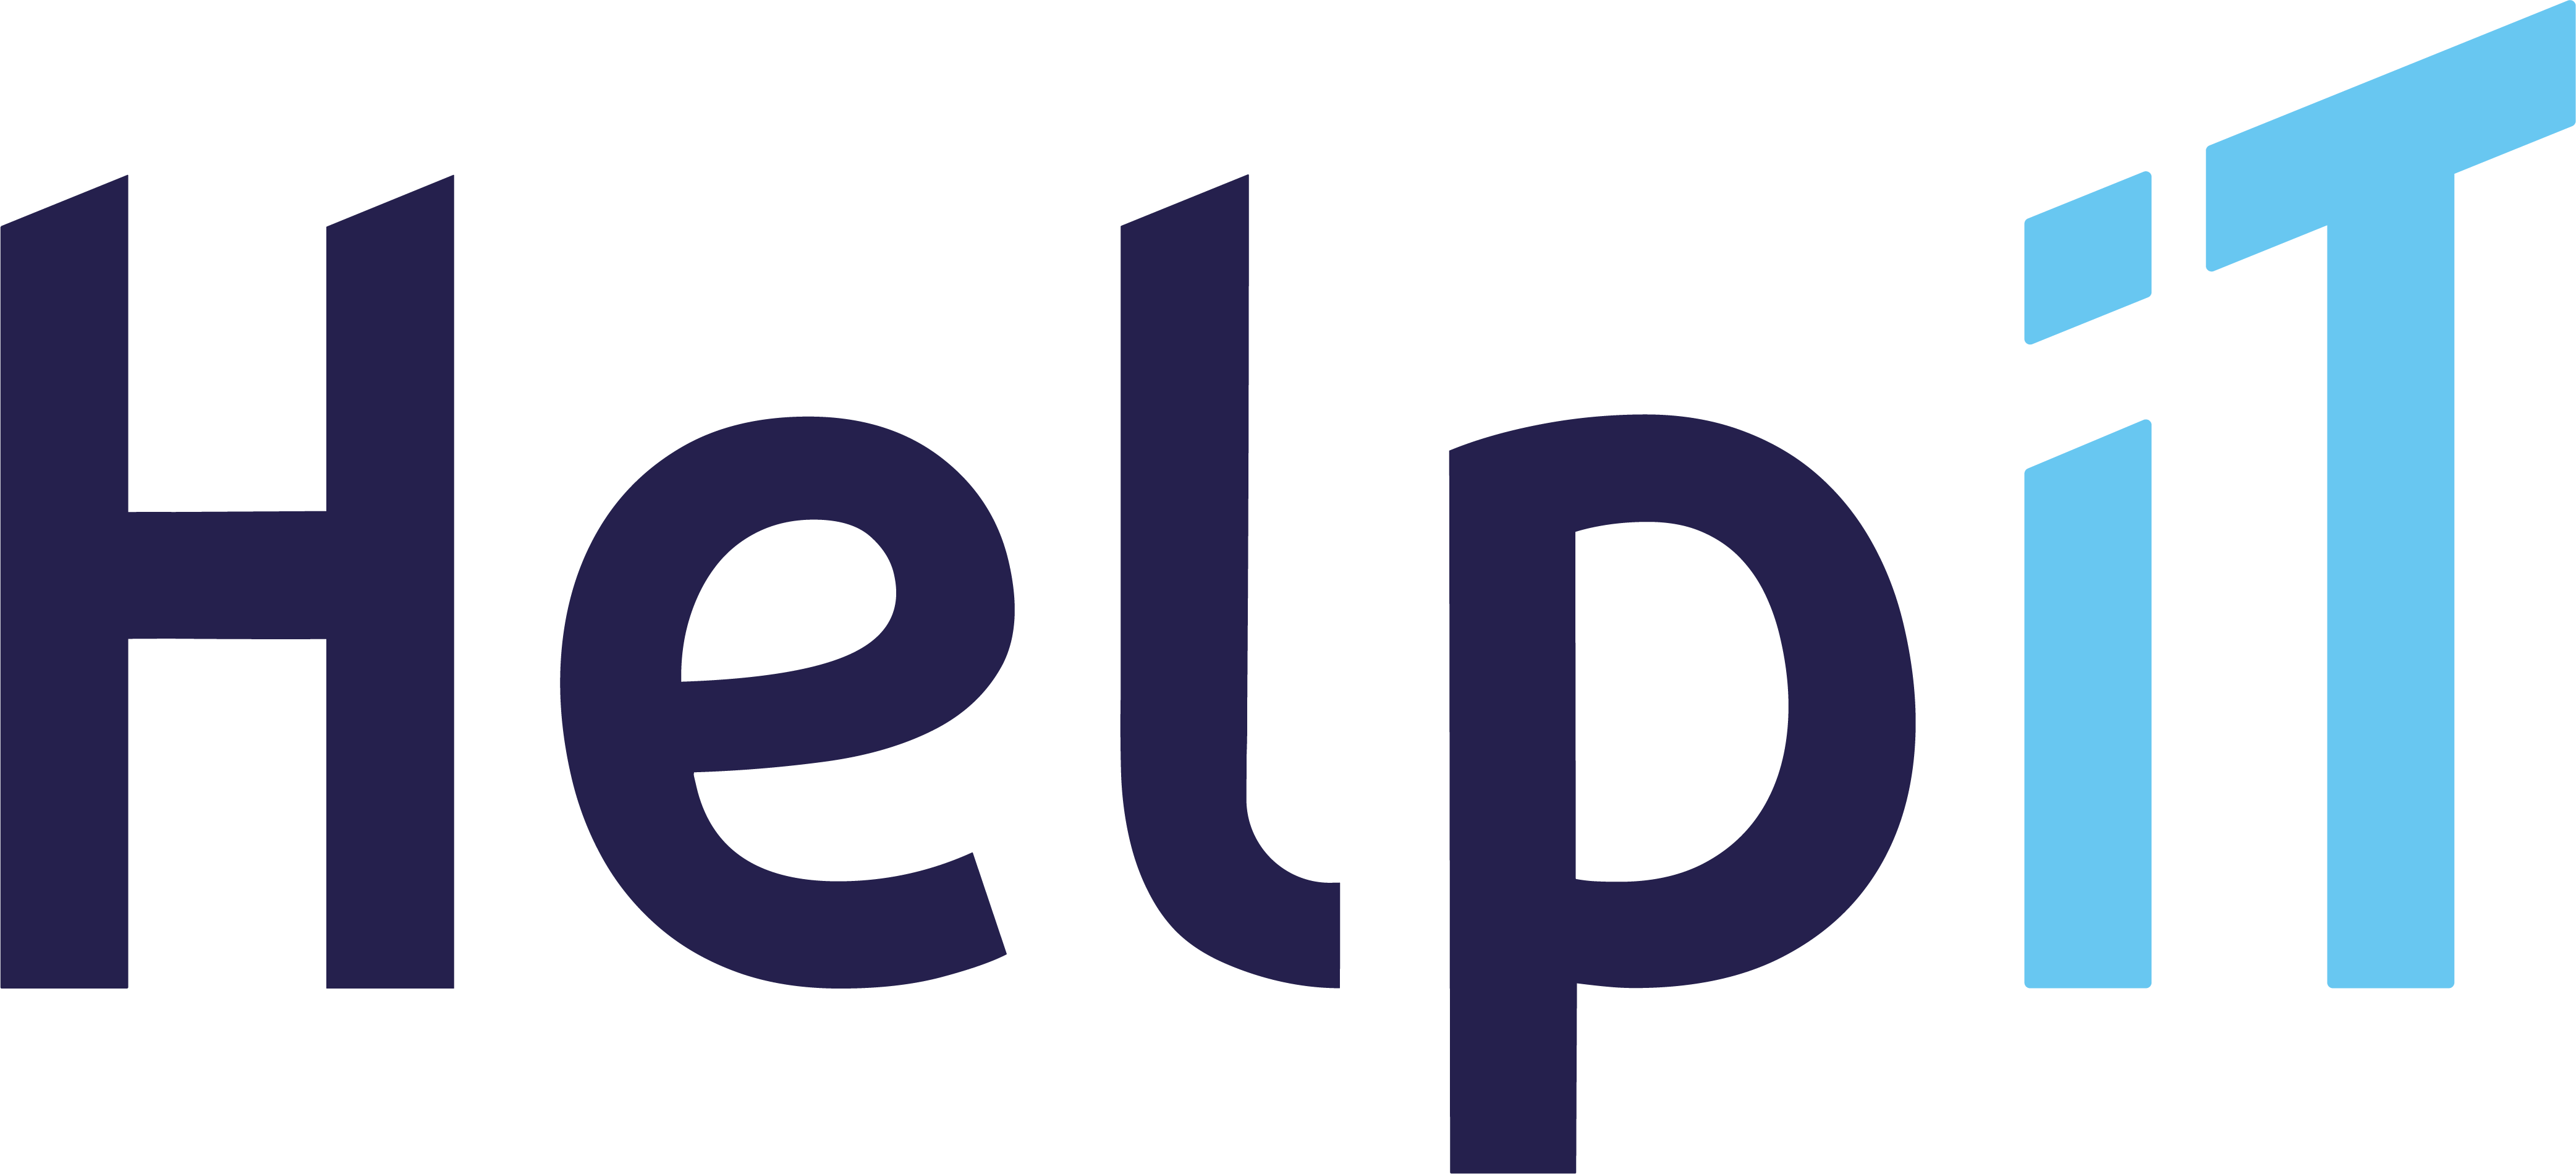 HelpIT-service-informatique-logo-site-Internet-couleur-Braine-l-alleud